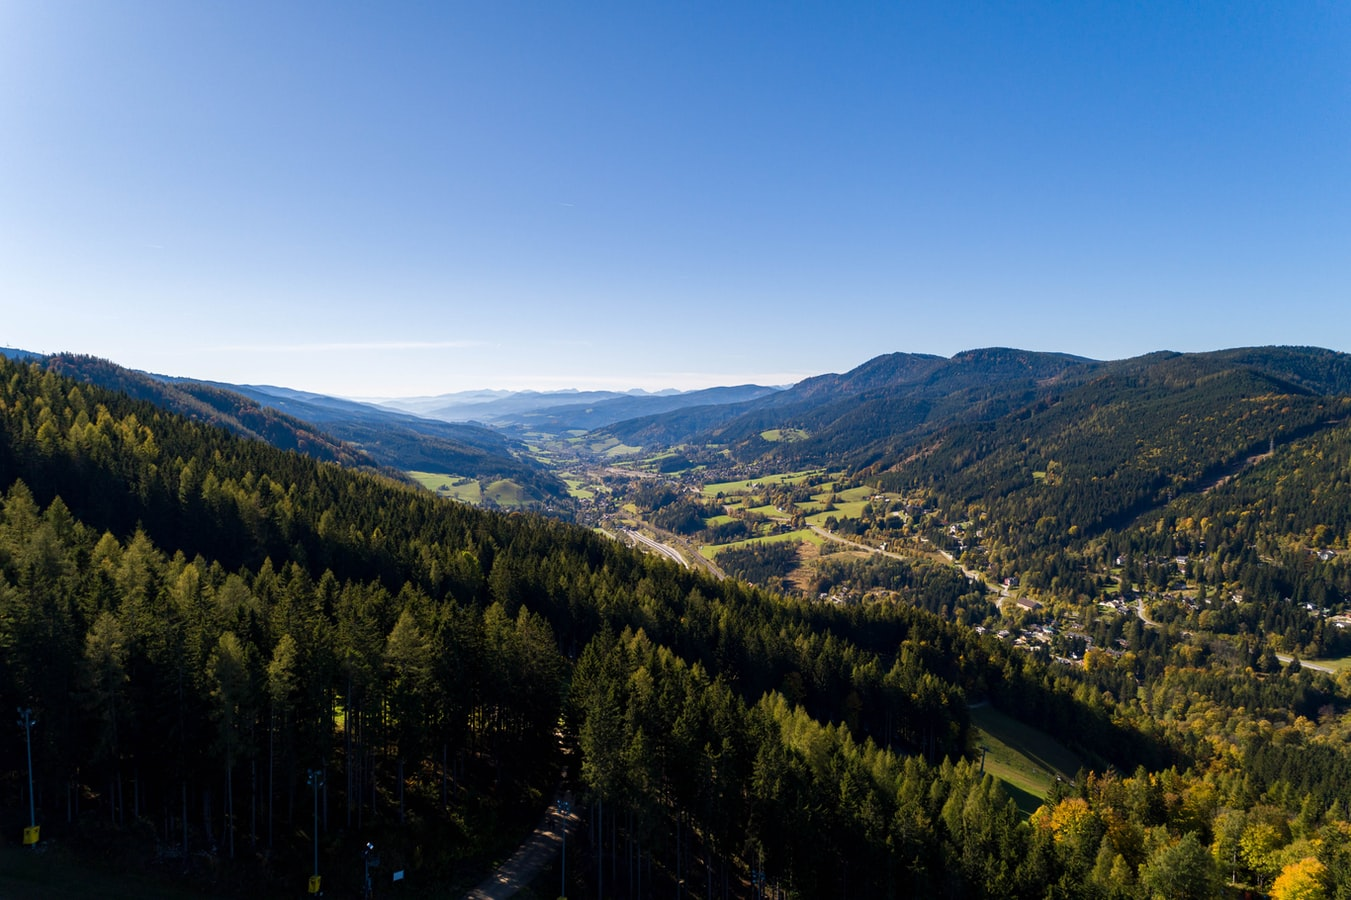 the semmering pass in austria, view over the mountains and village in austria